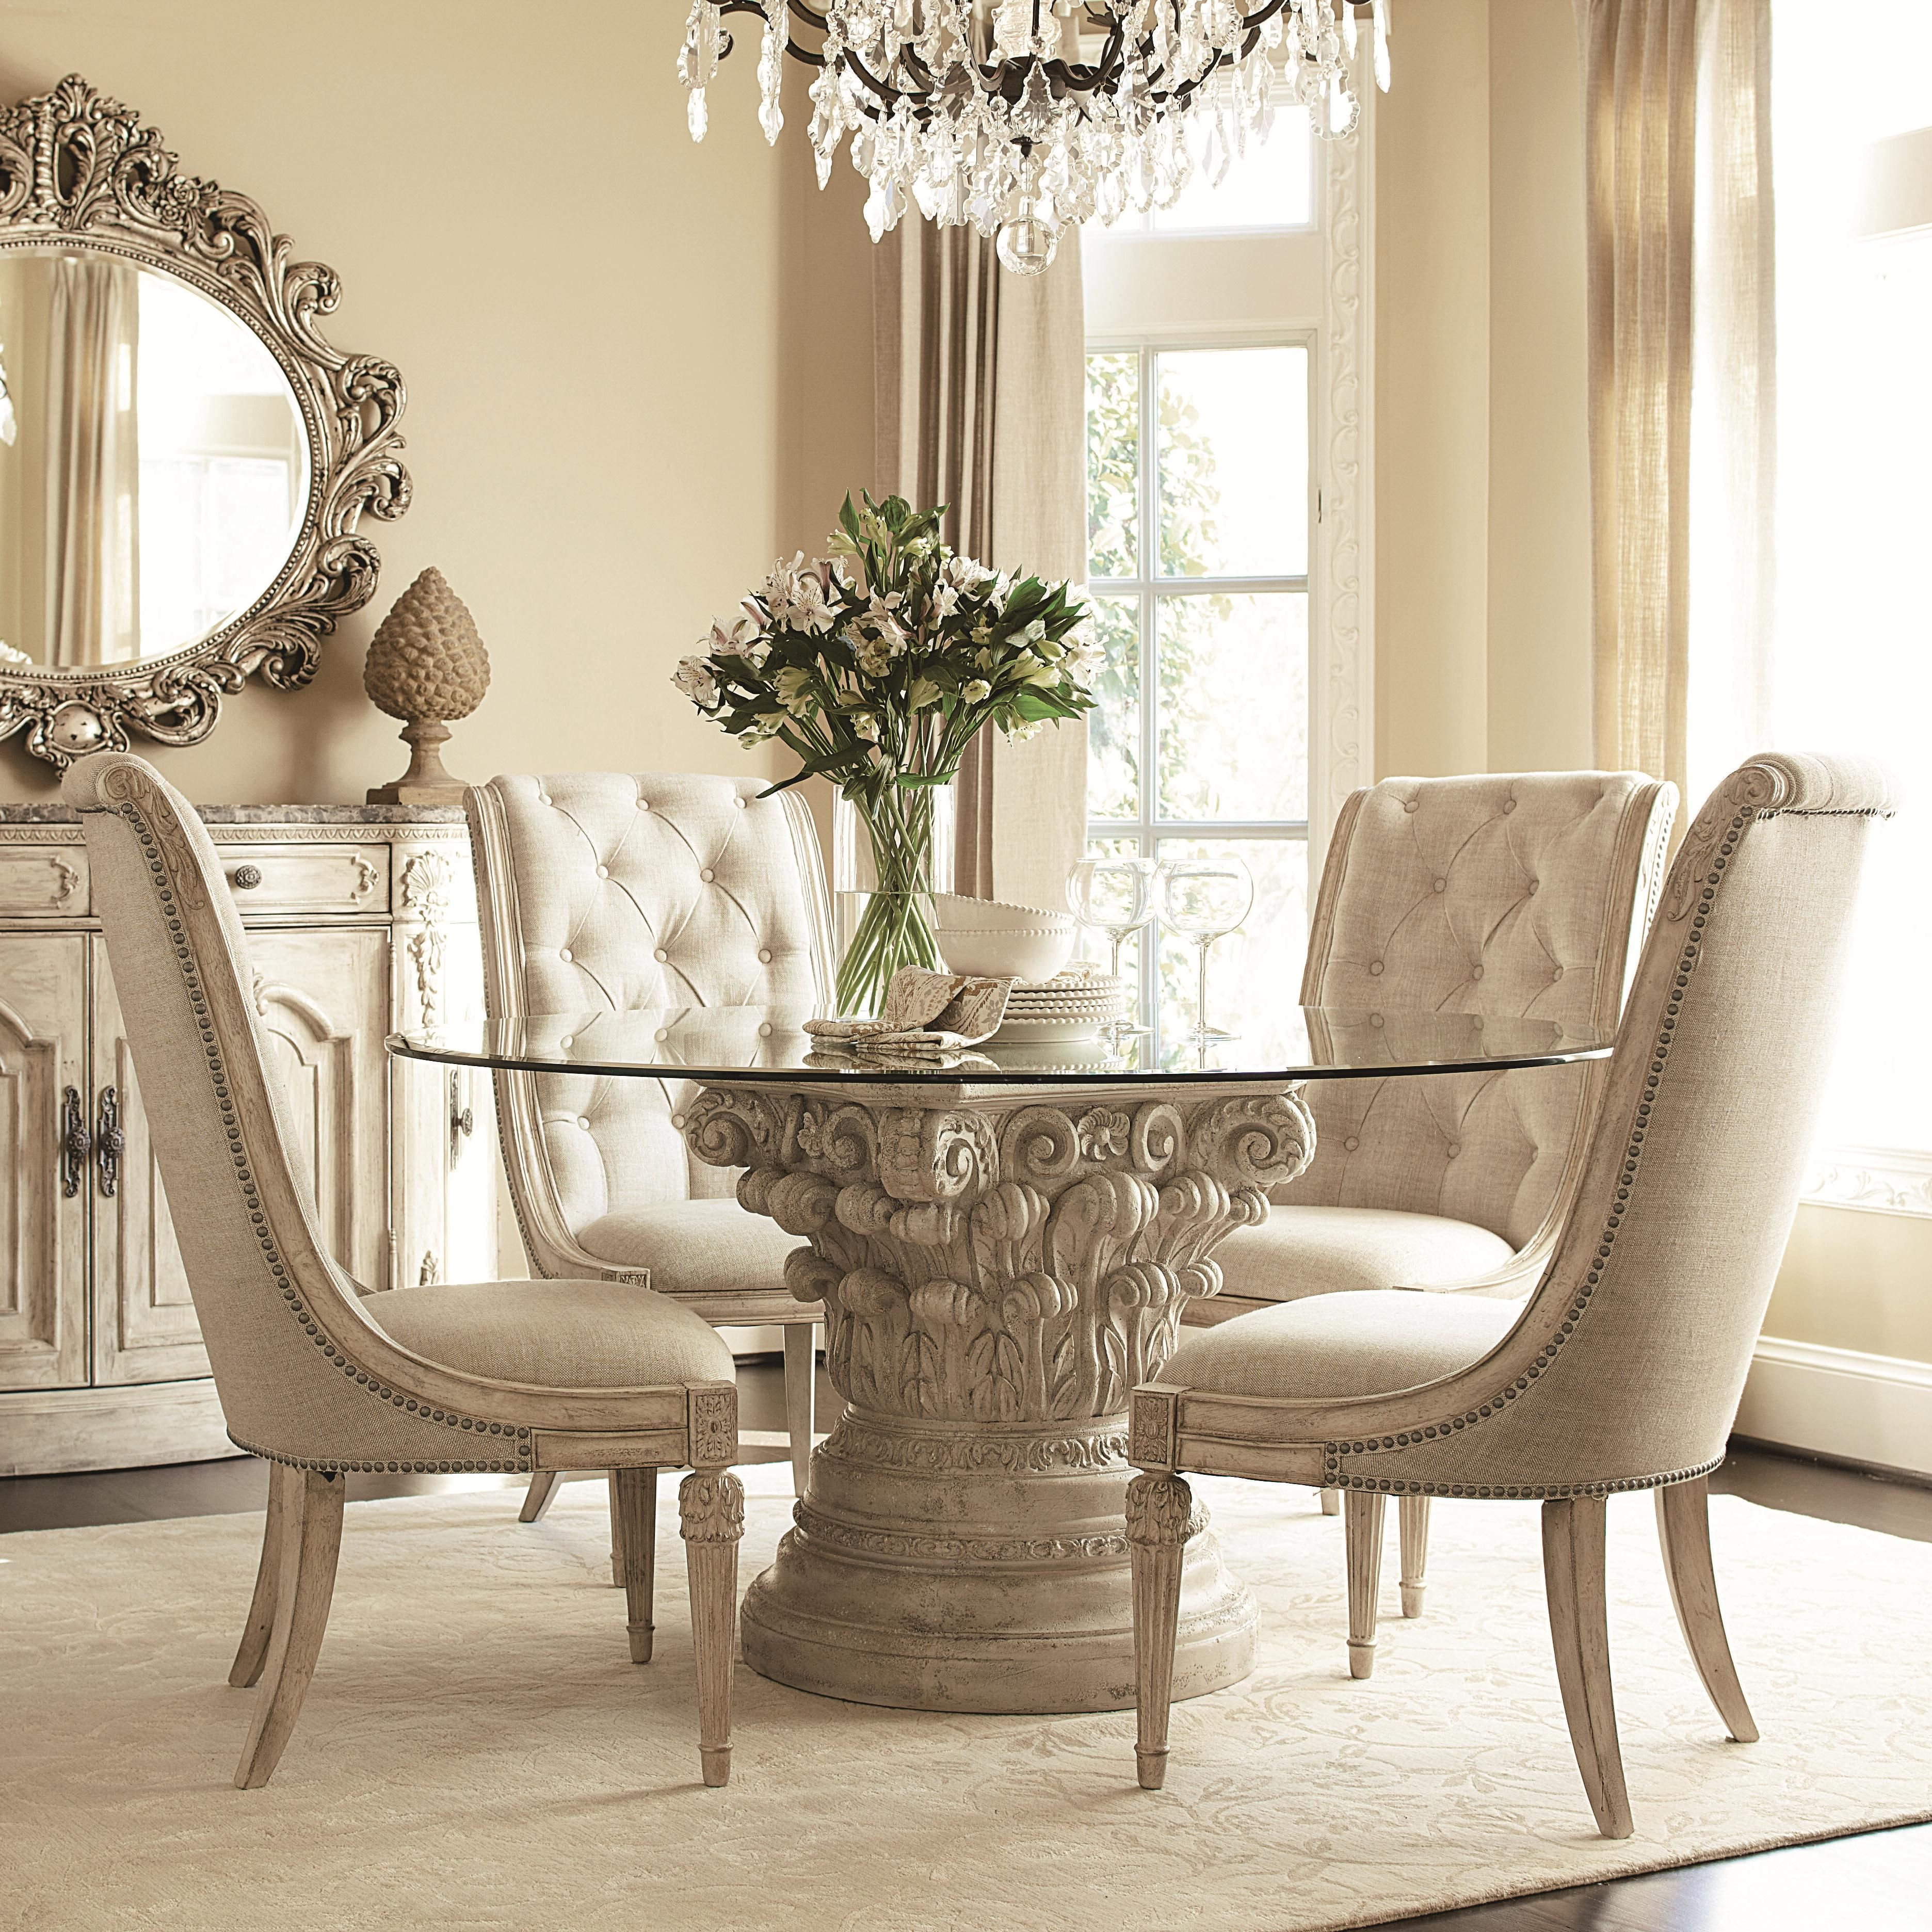 glass table sets for living room painting small look larger jessica mcclintock home the boutique collection 5 piece round dining with pedestal base upholstered side chairs by american drew at ahfa